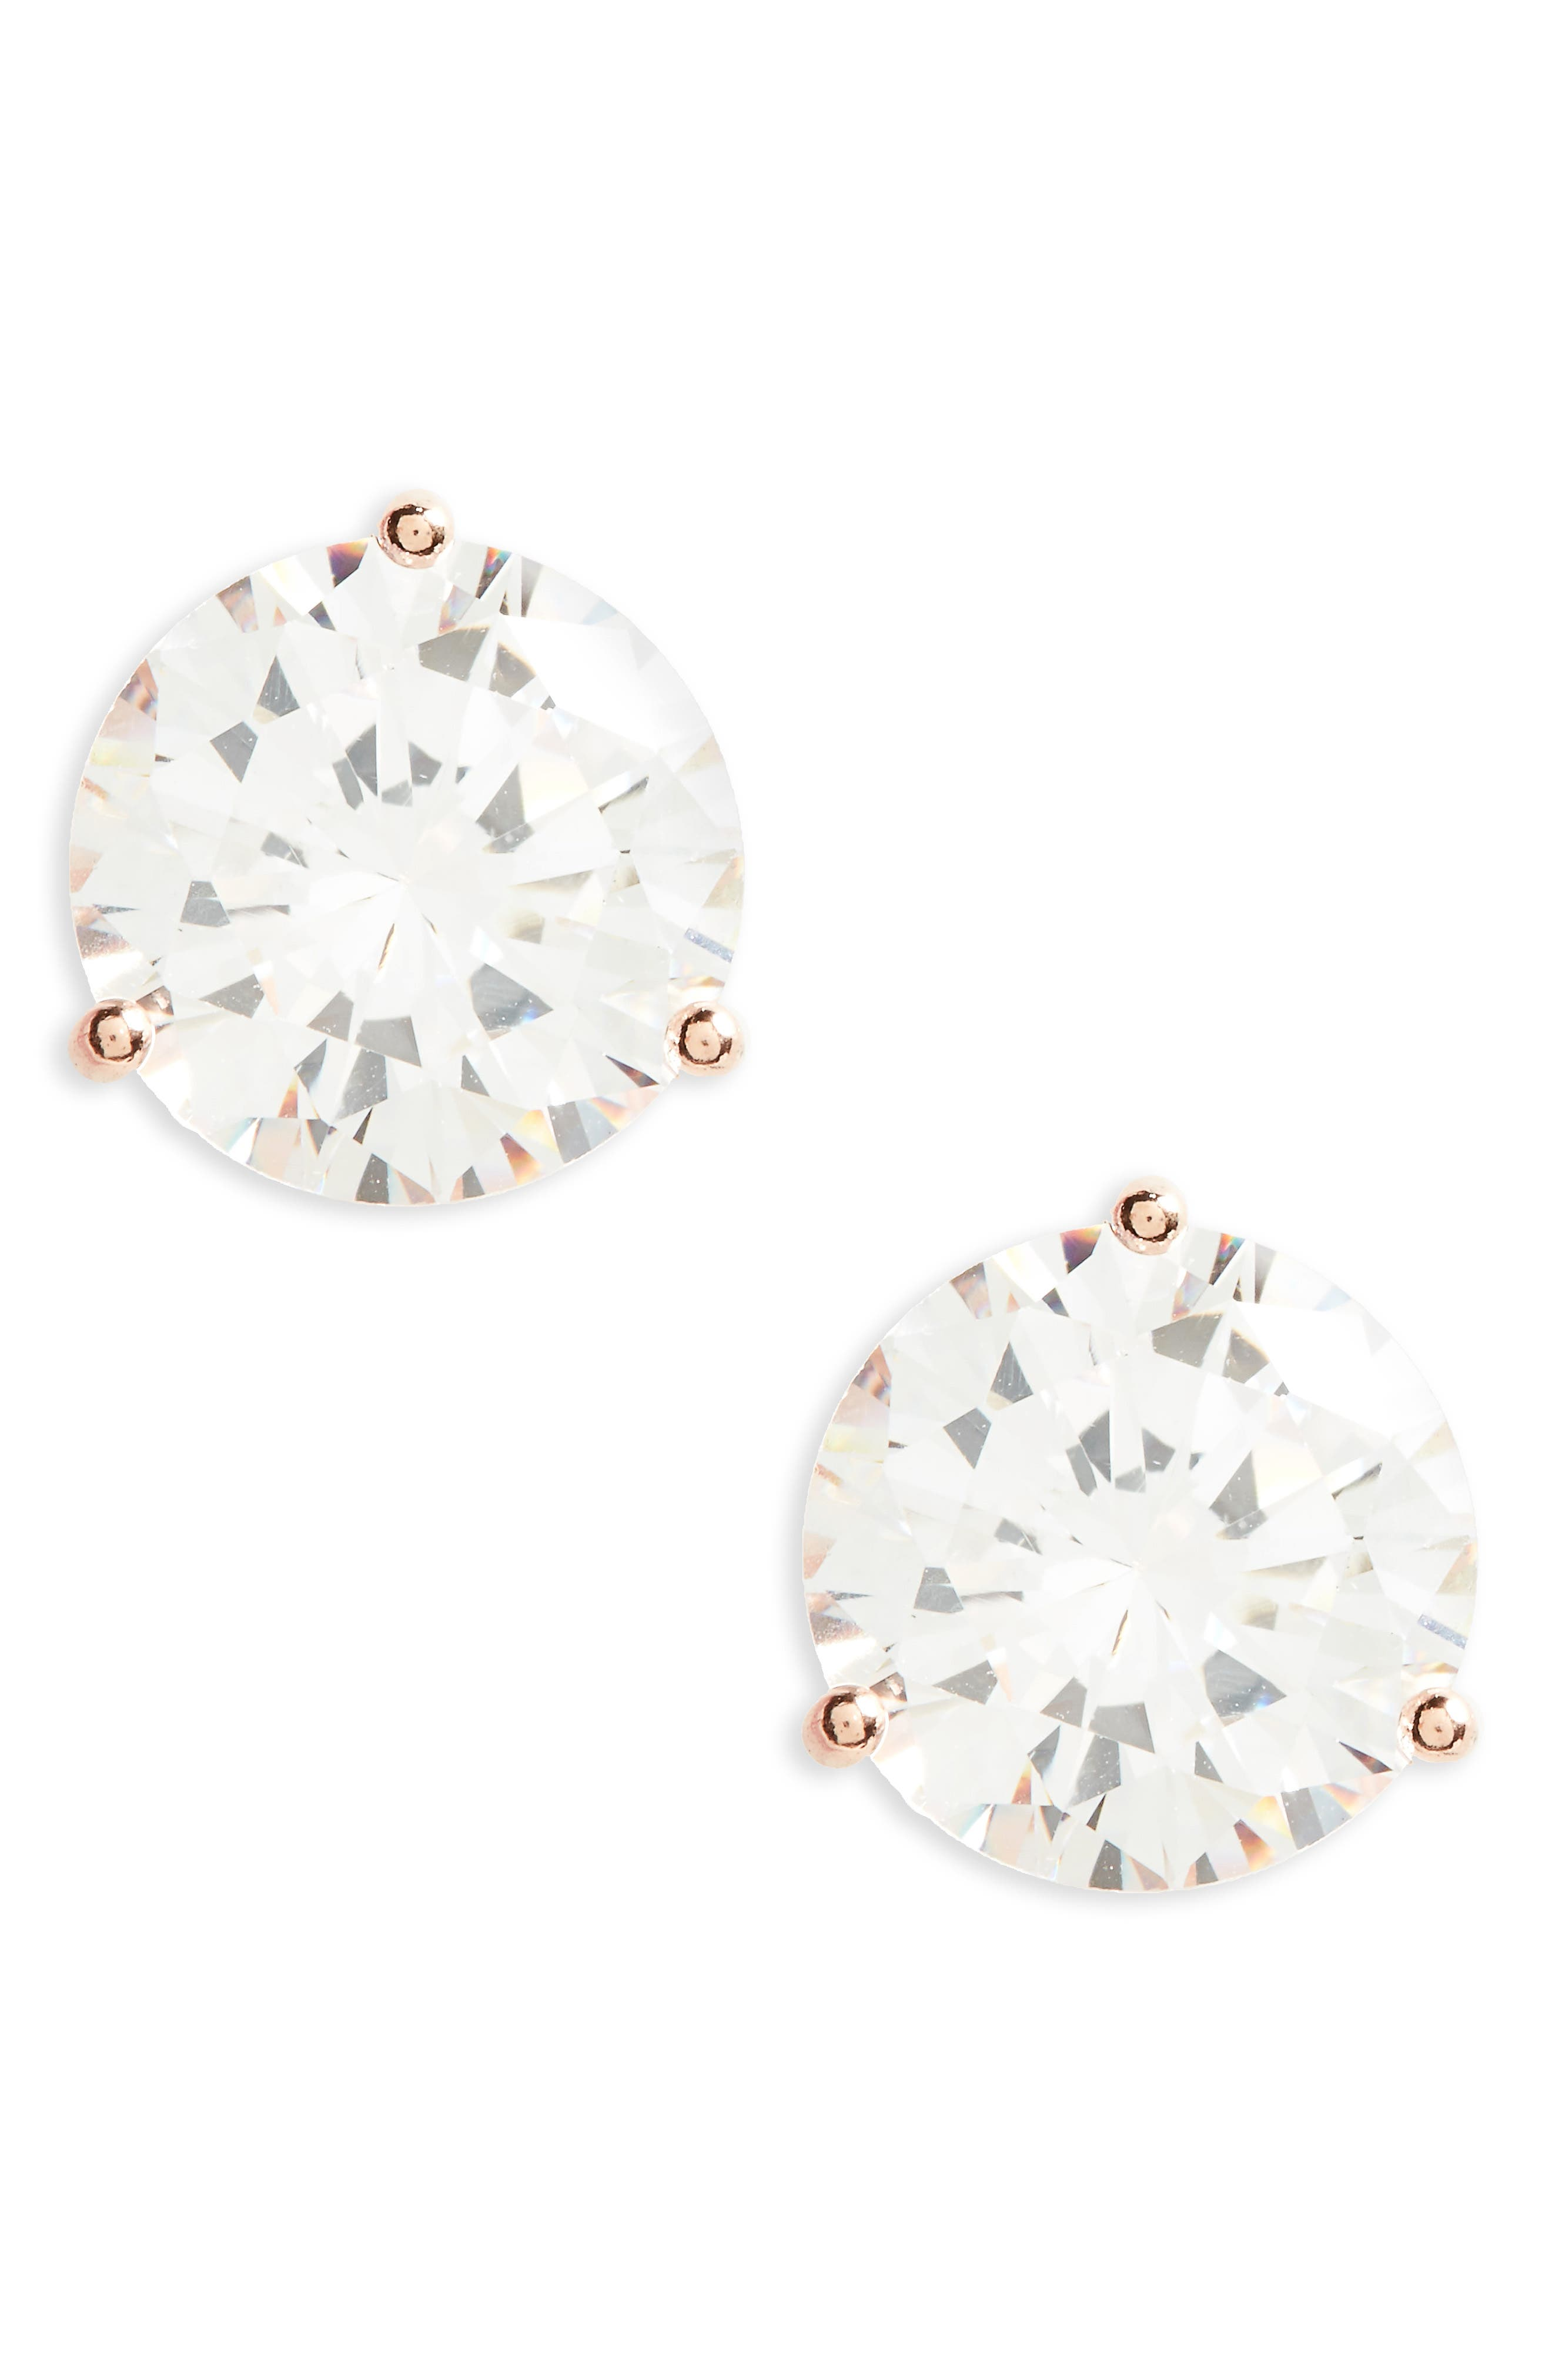 NORDSTROM, 8.0ct tw Cubic Zirconia Earrings, Main thumbnail 1, color, CLEAR- ROSE GOLD